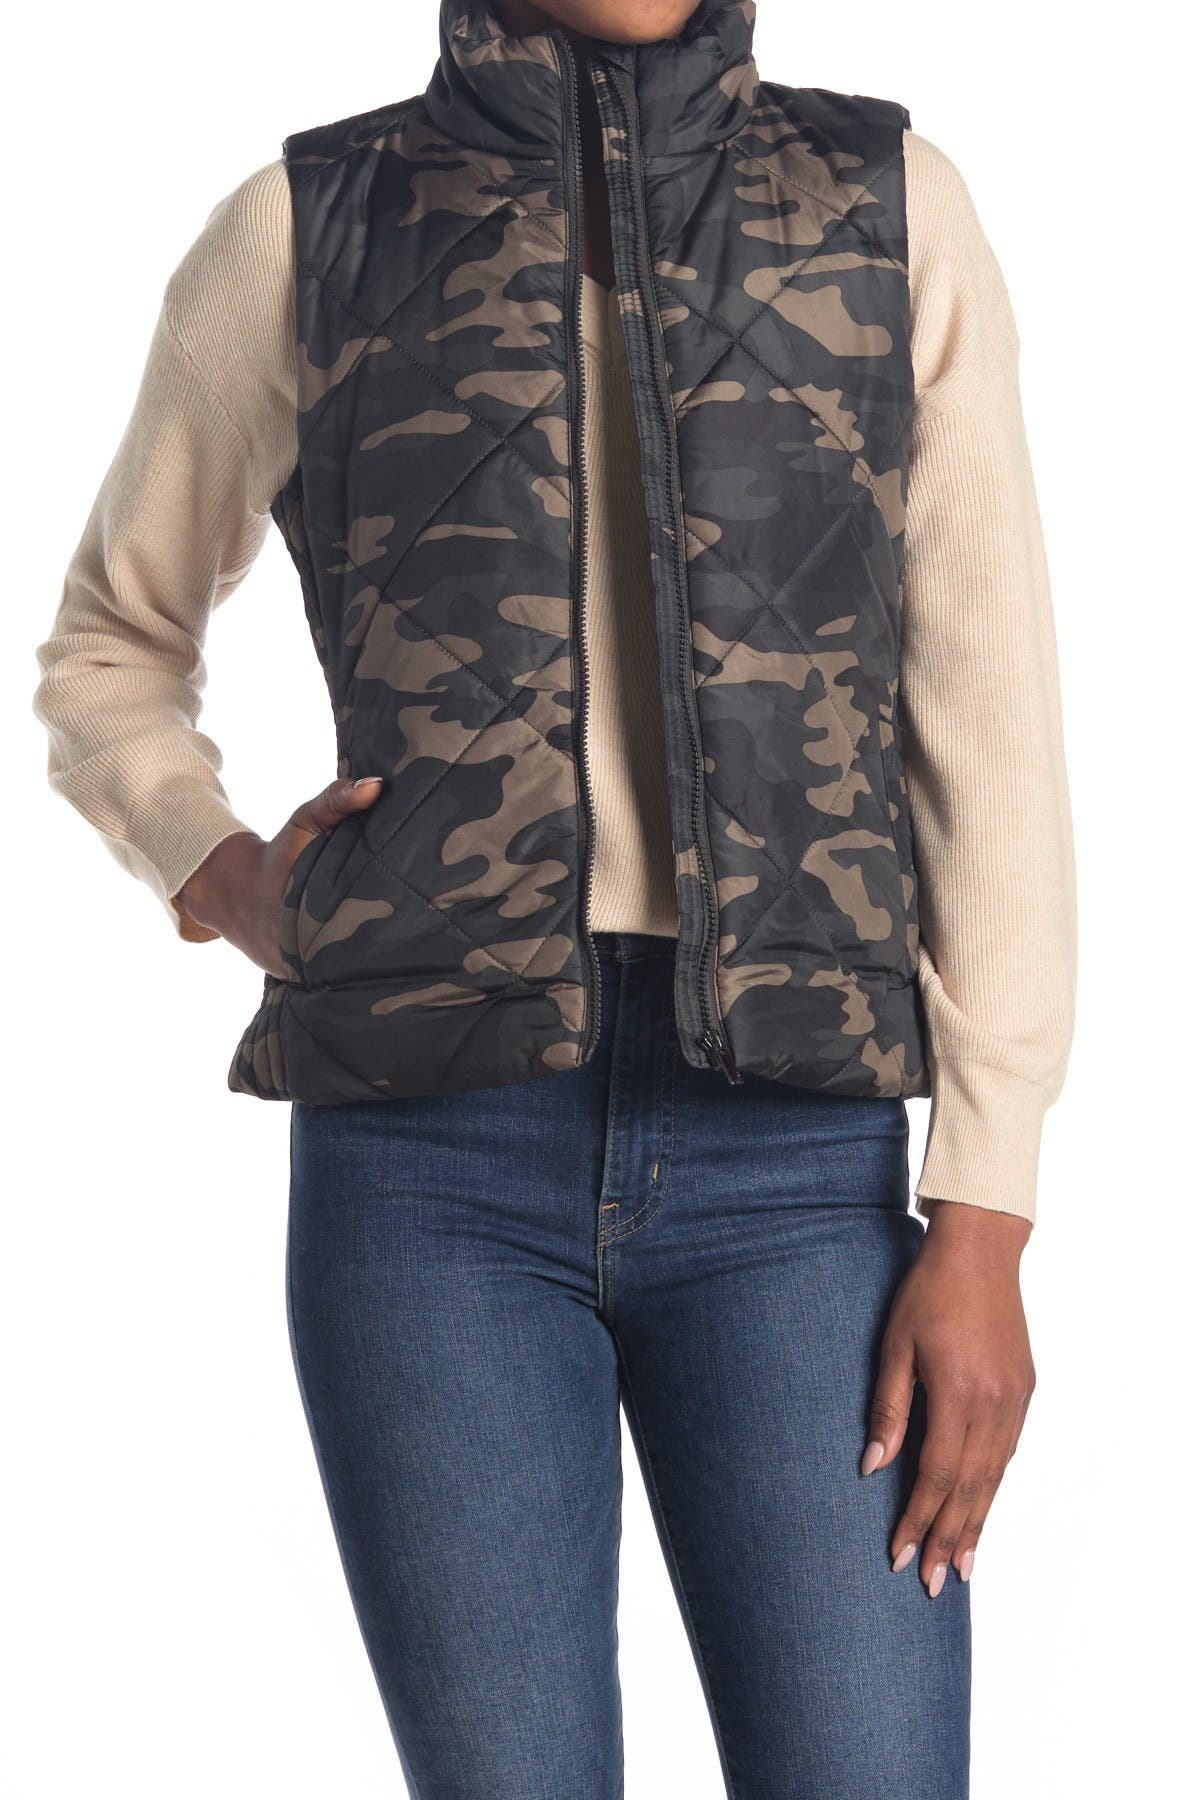 Image of North and Co Camo Puffer Zip Vest